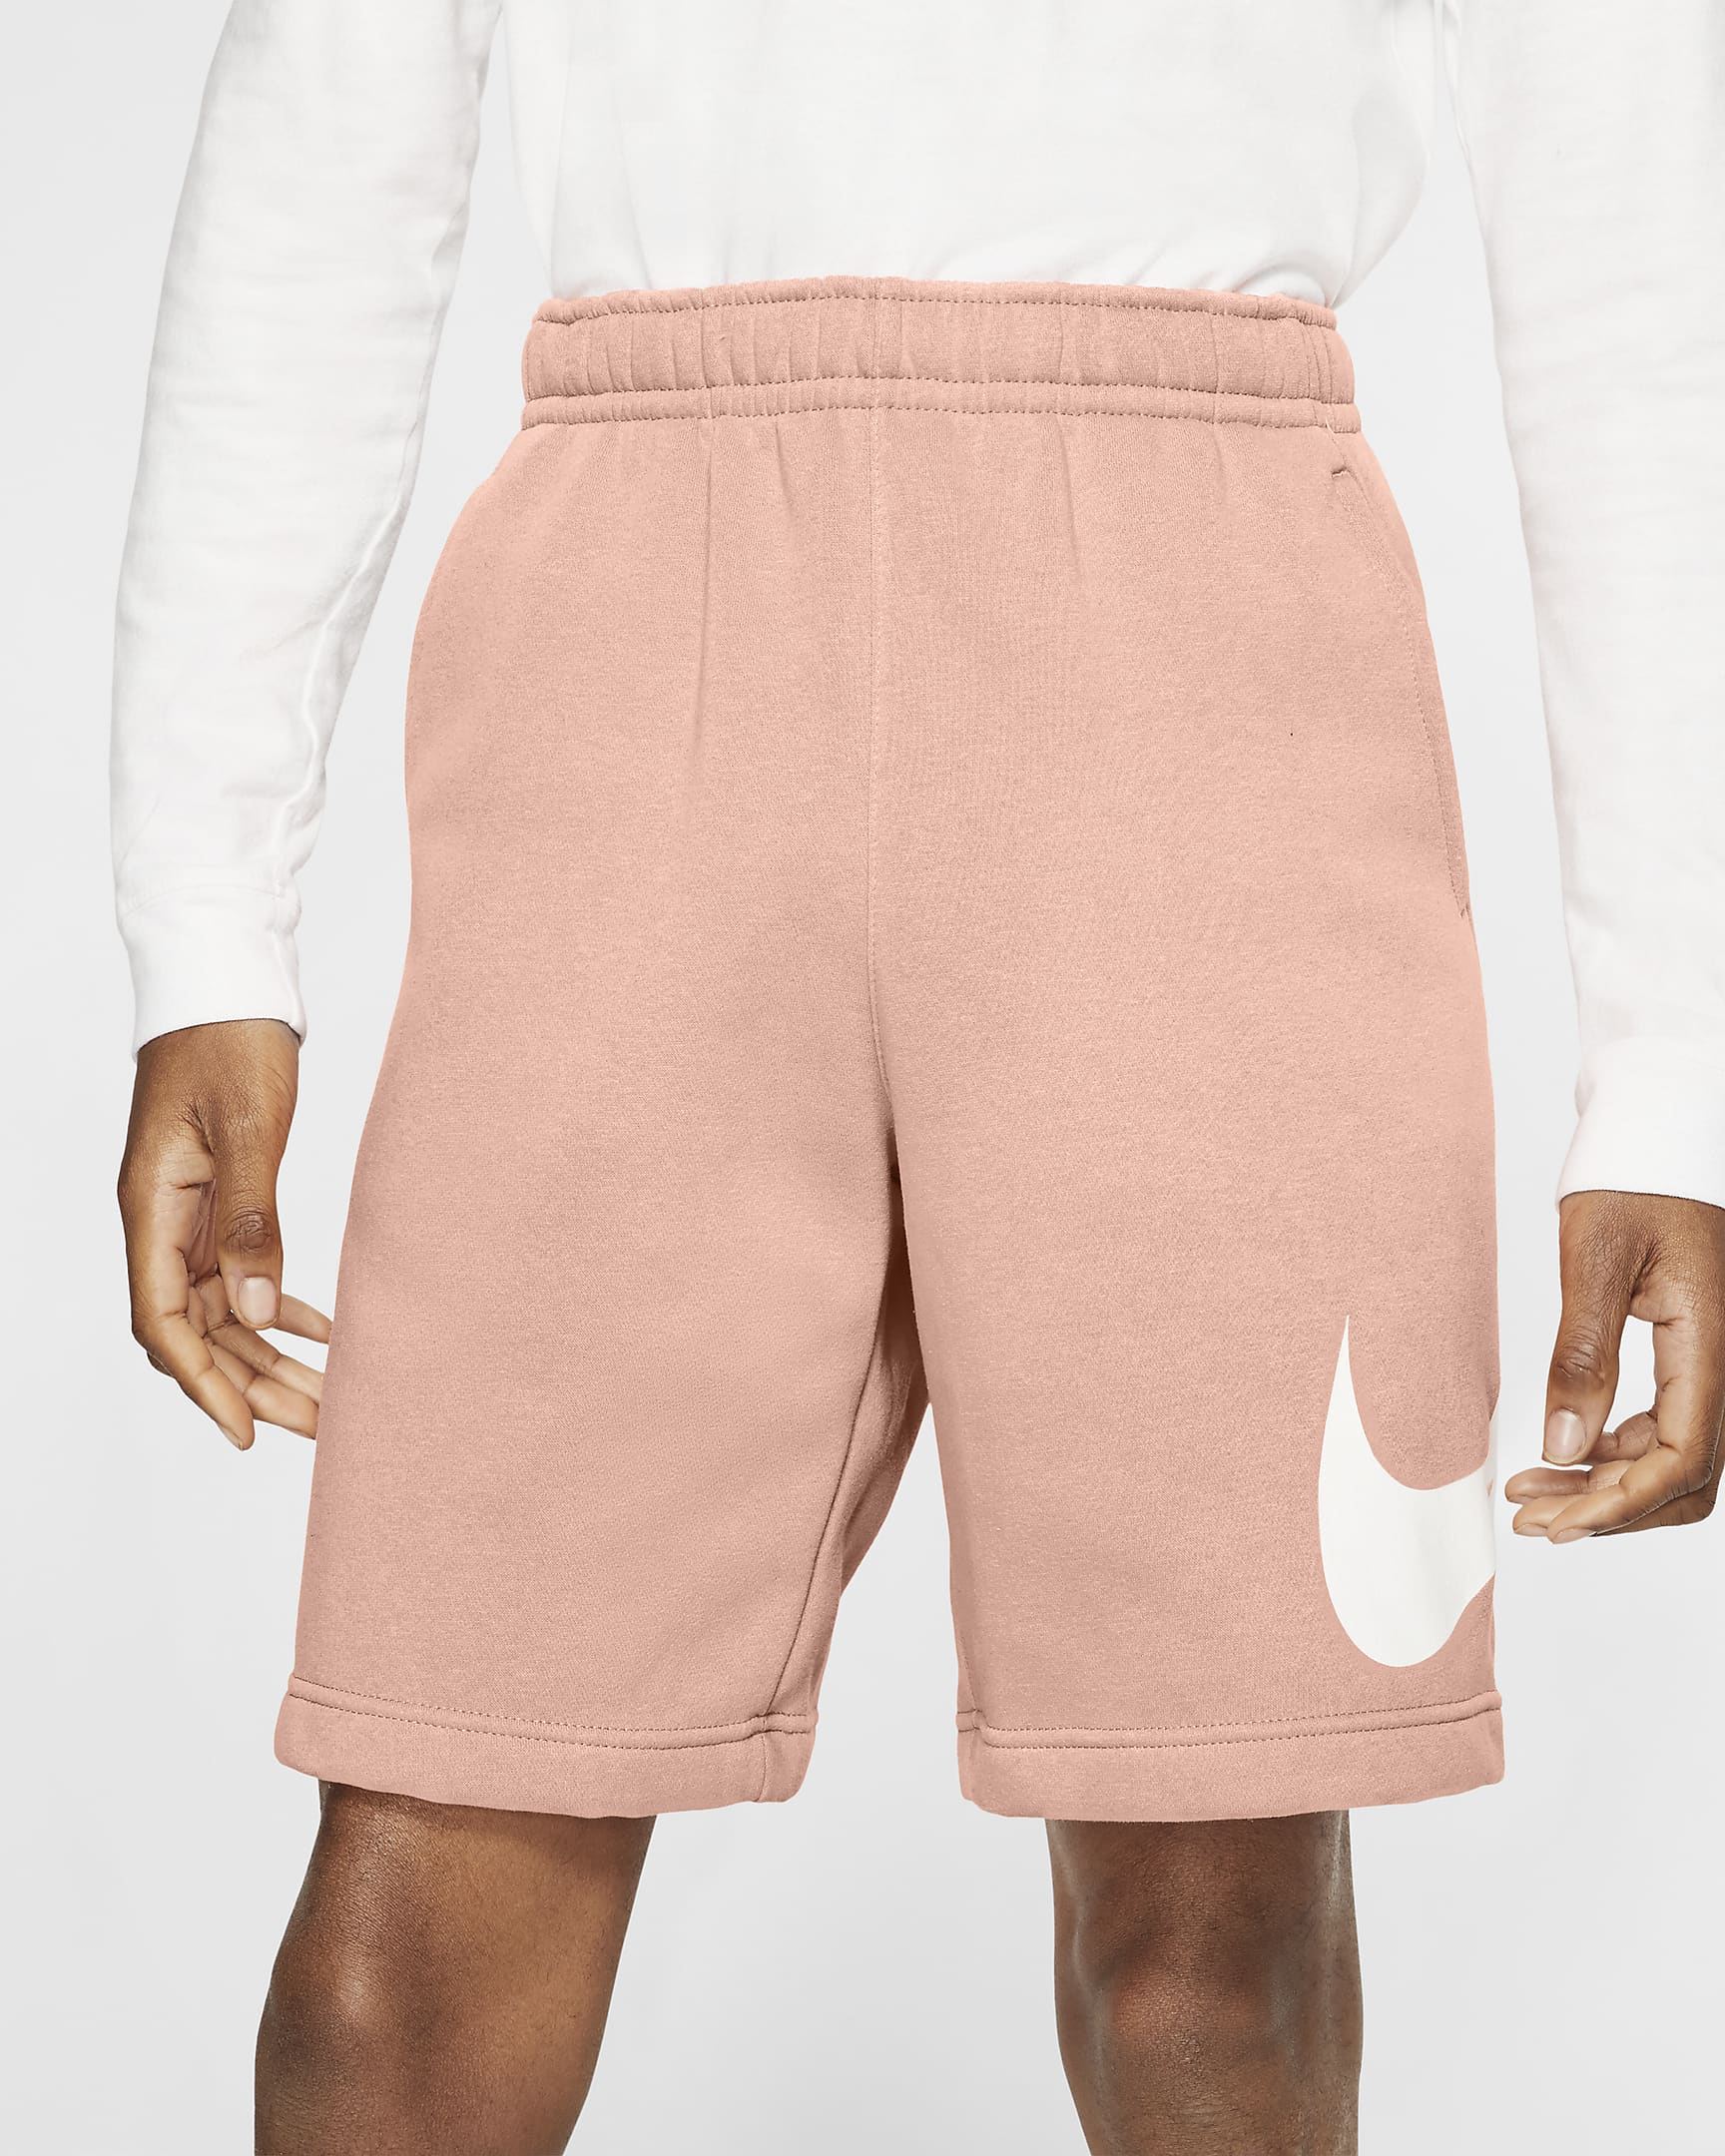 sportswear-club-mens-graphic-shorts-hQgvng.png